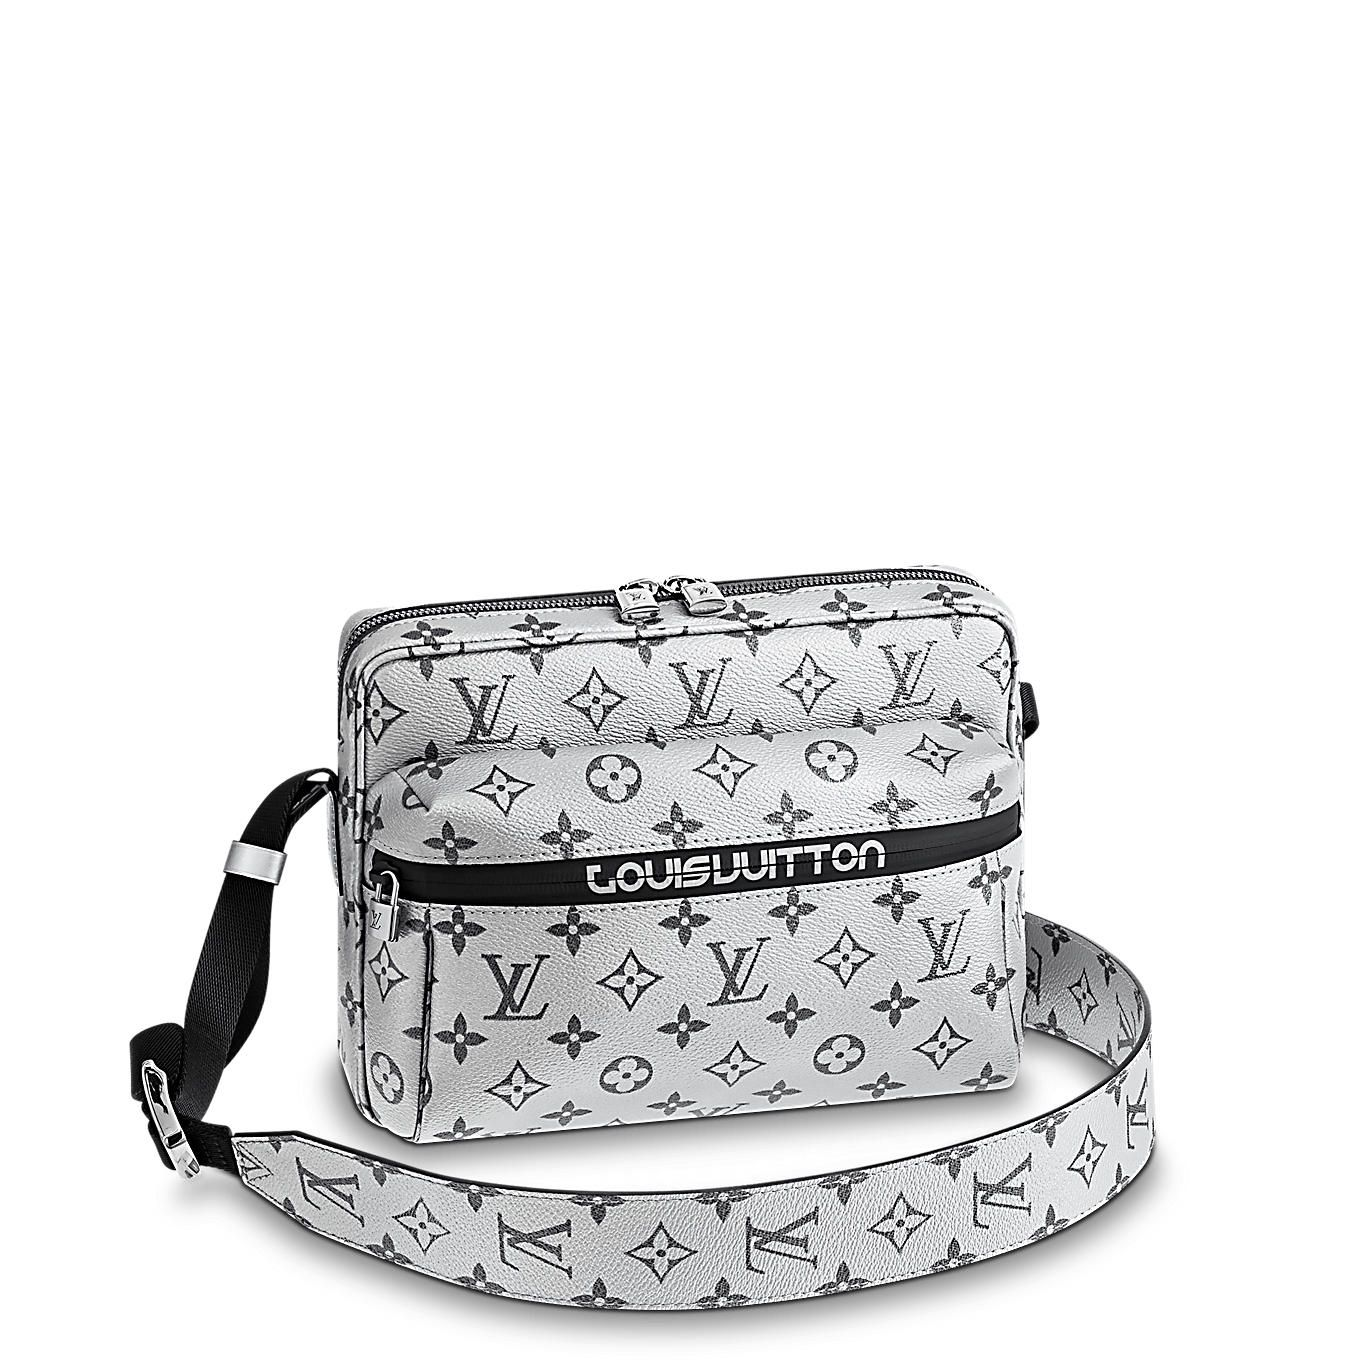 Messenger PM Monogram Other in Men s Men s Bags Fashion Shows collections  by Louis Vuitton b1af33d03a044